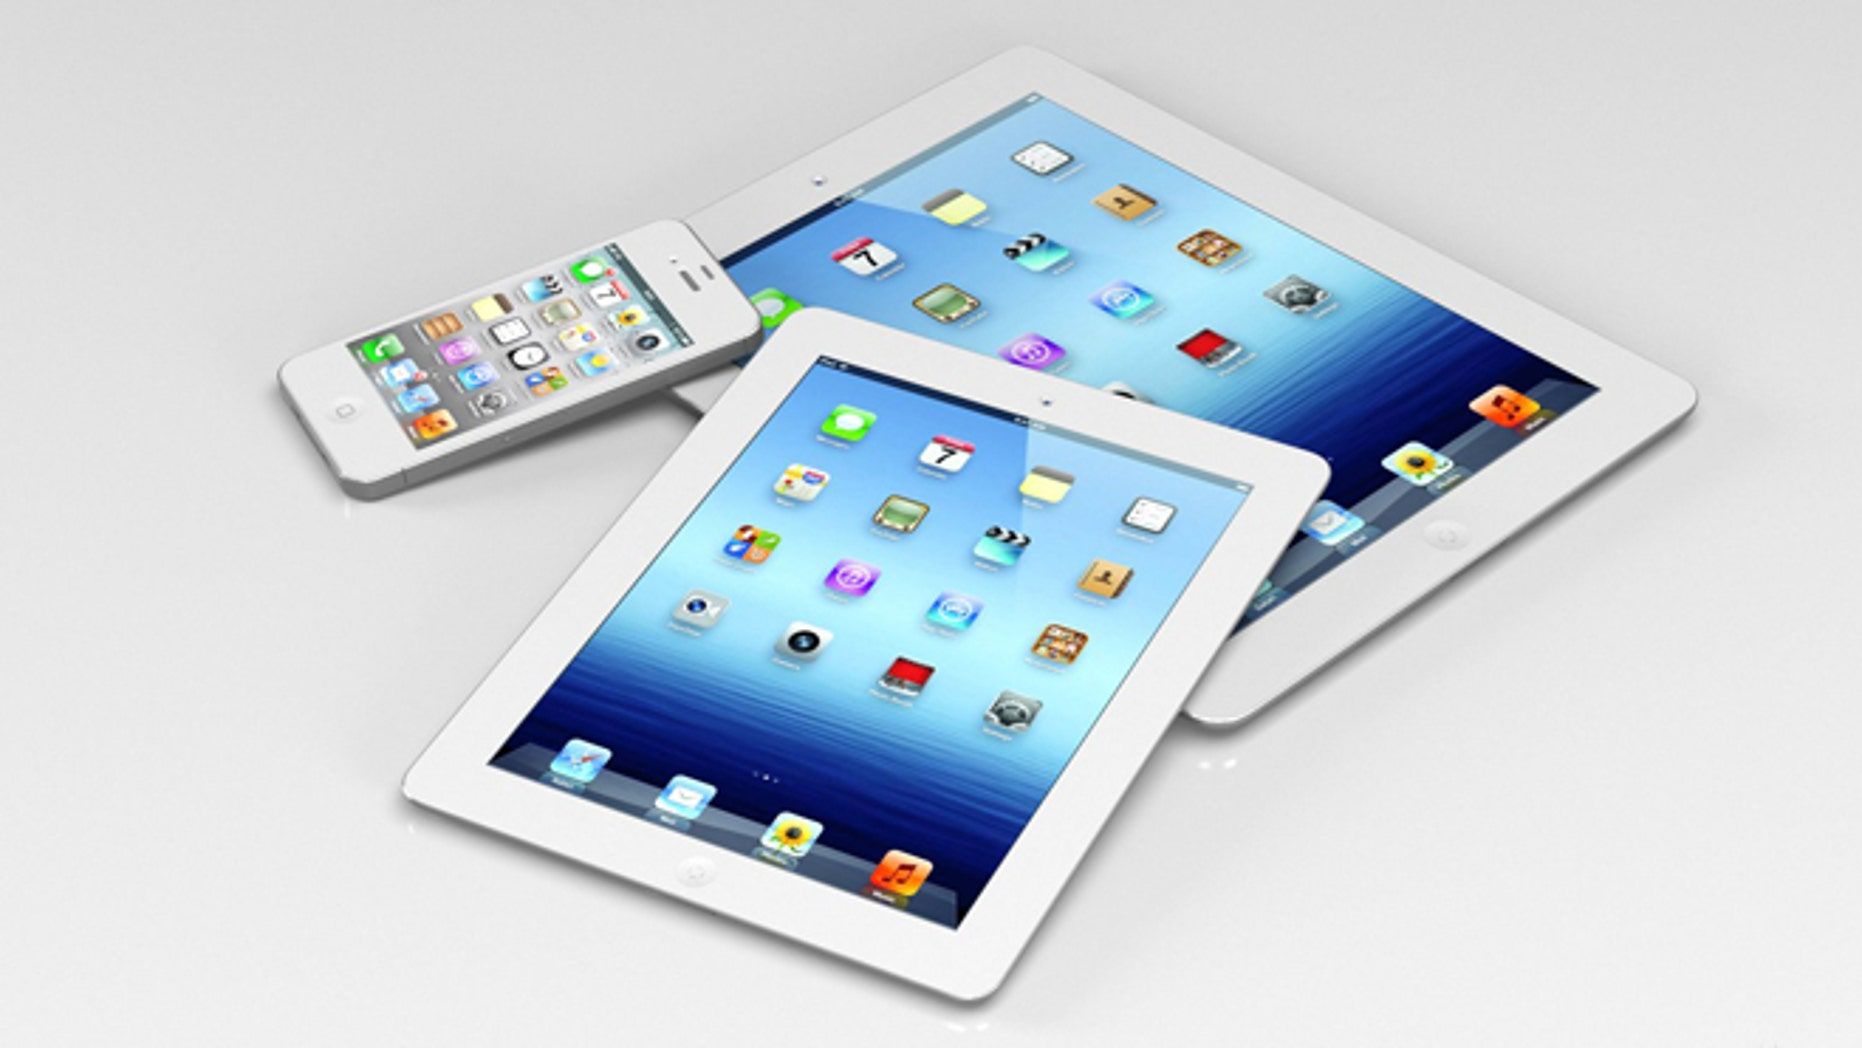 One designer's conception of what an iPad Mini might look like.